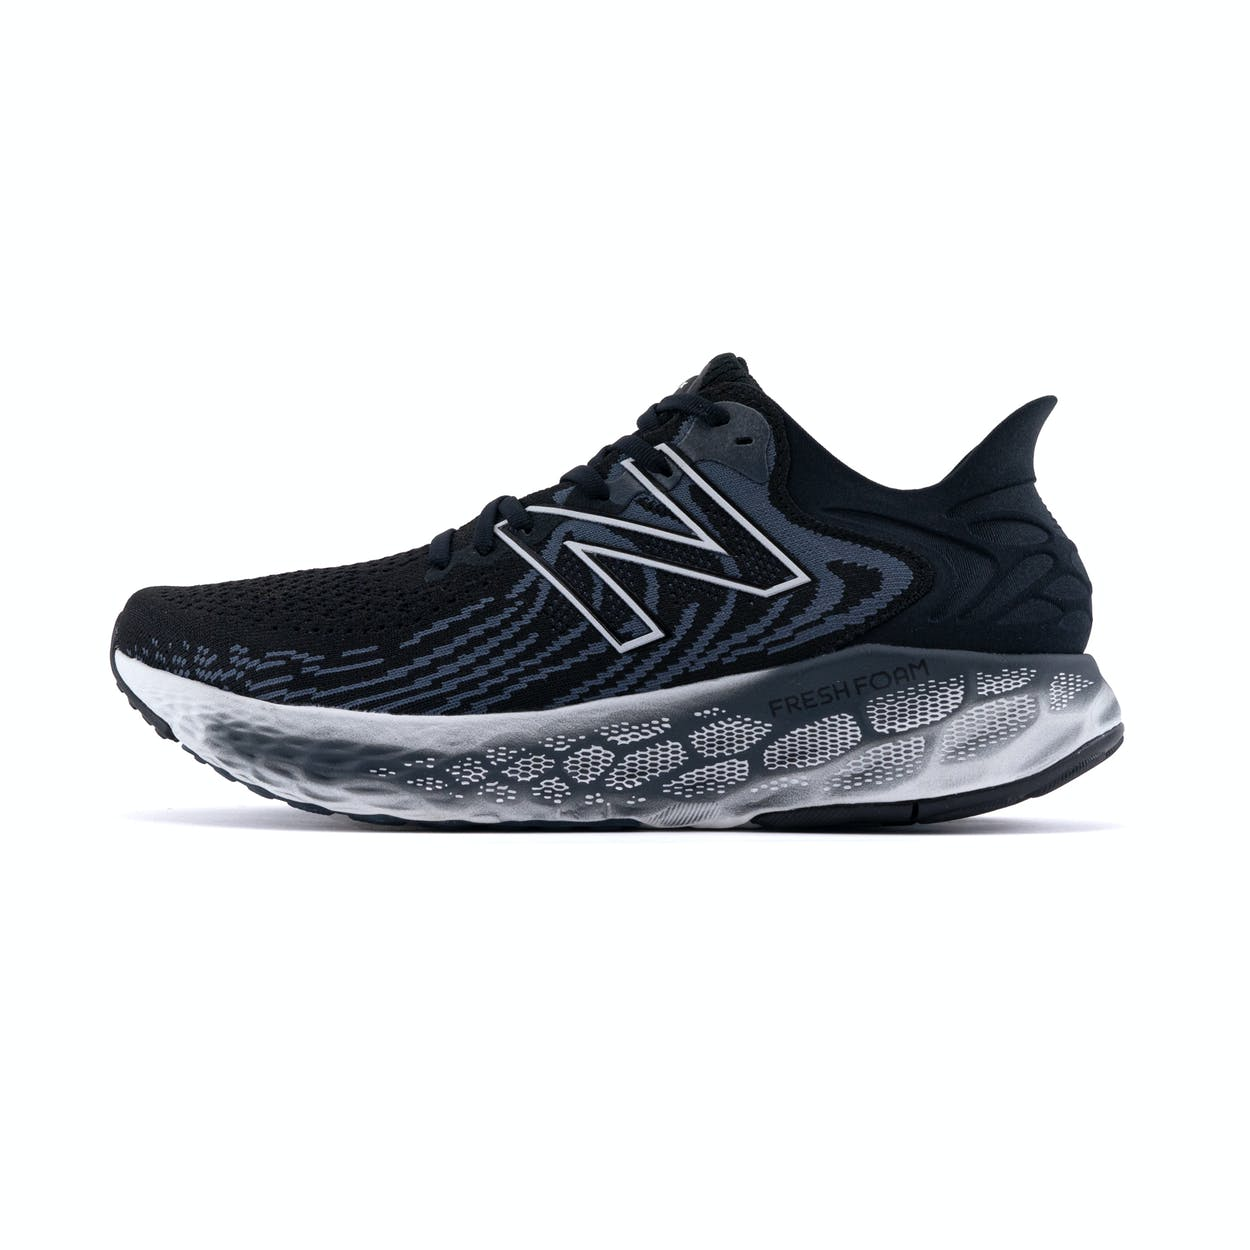 New Balance	Fresh Foam 1080 v11 Joggesko Herre Sort